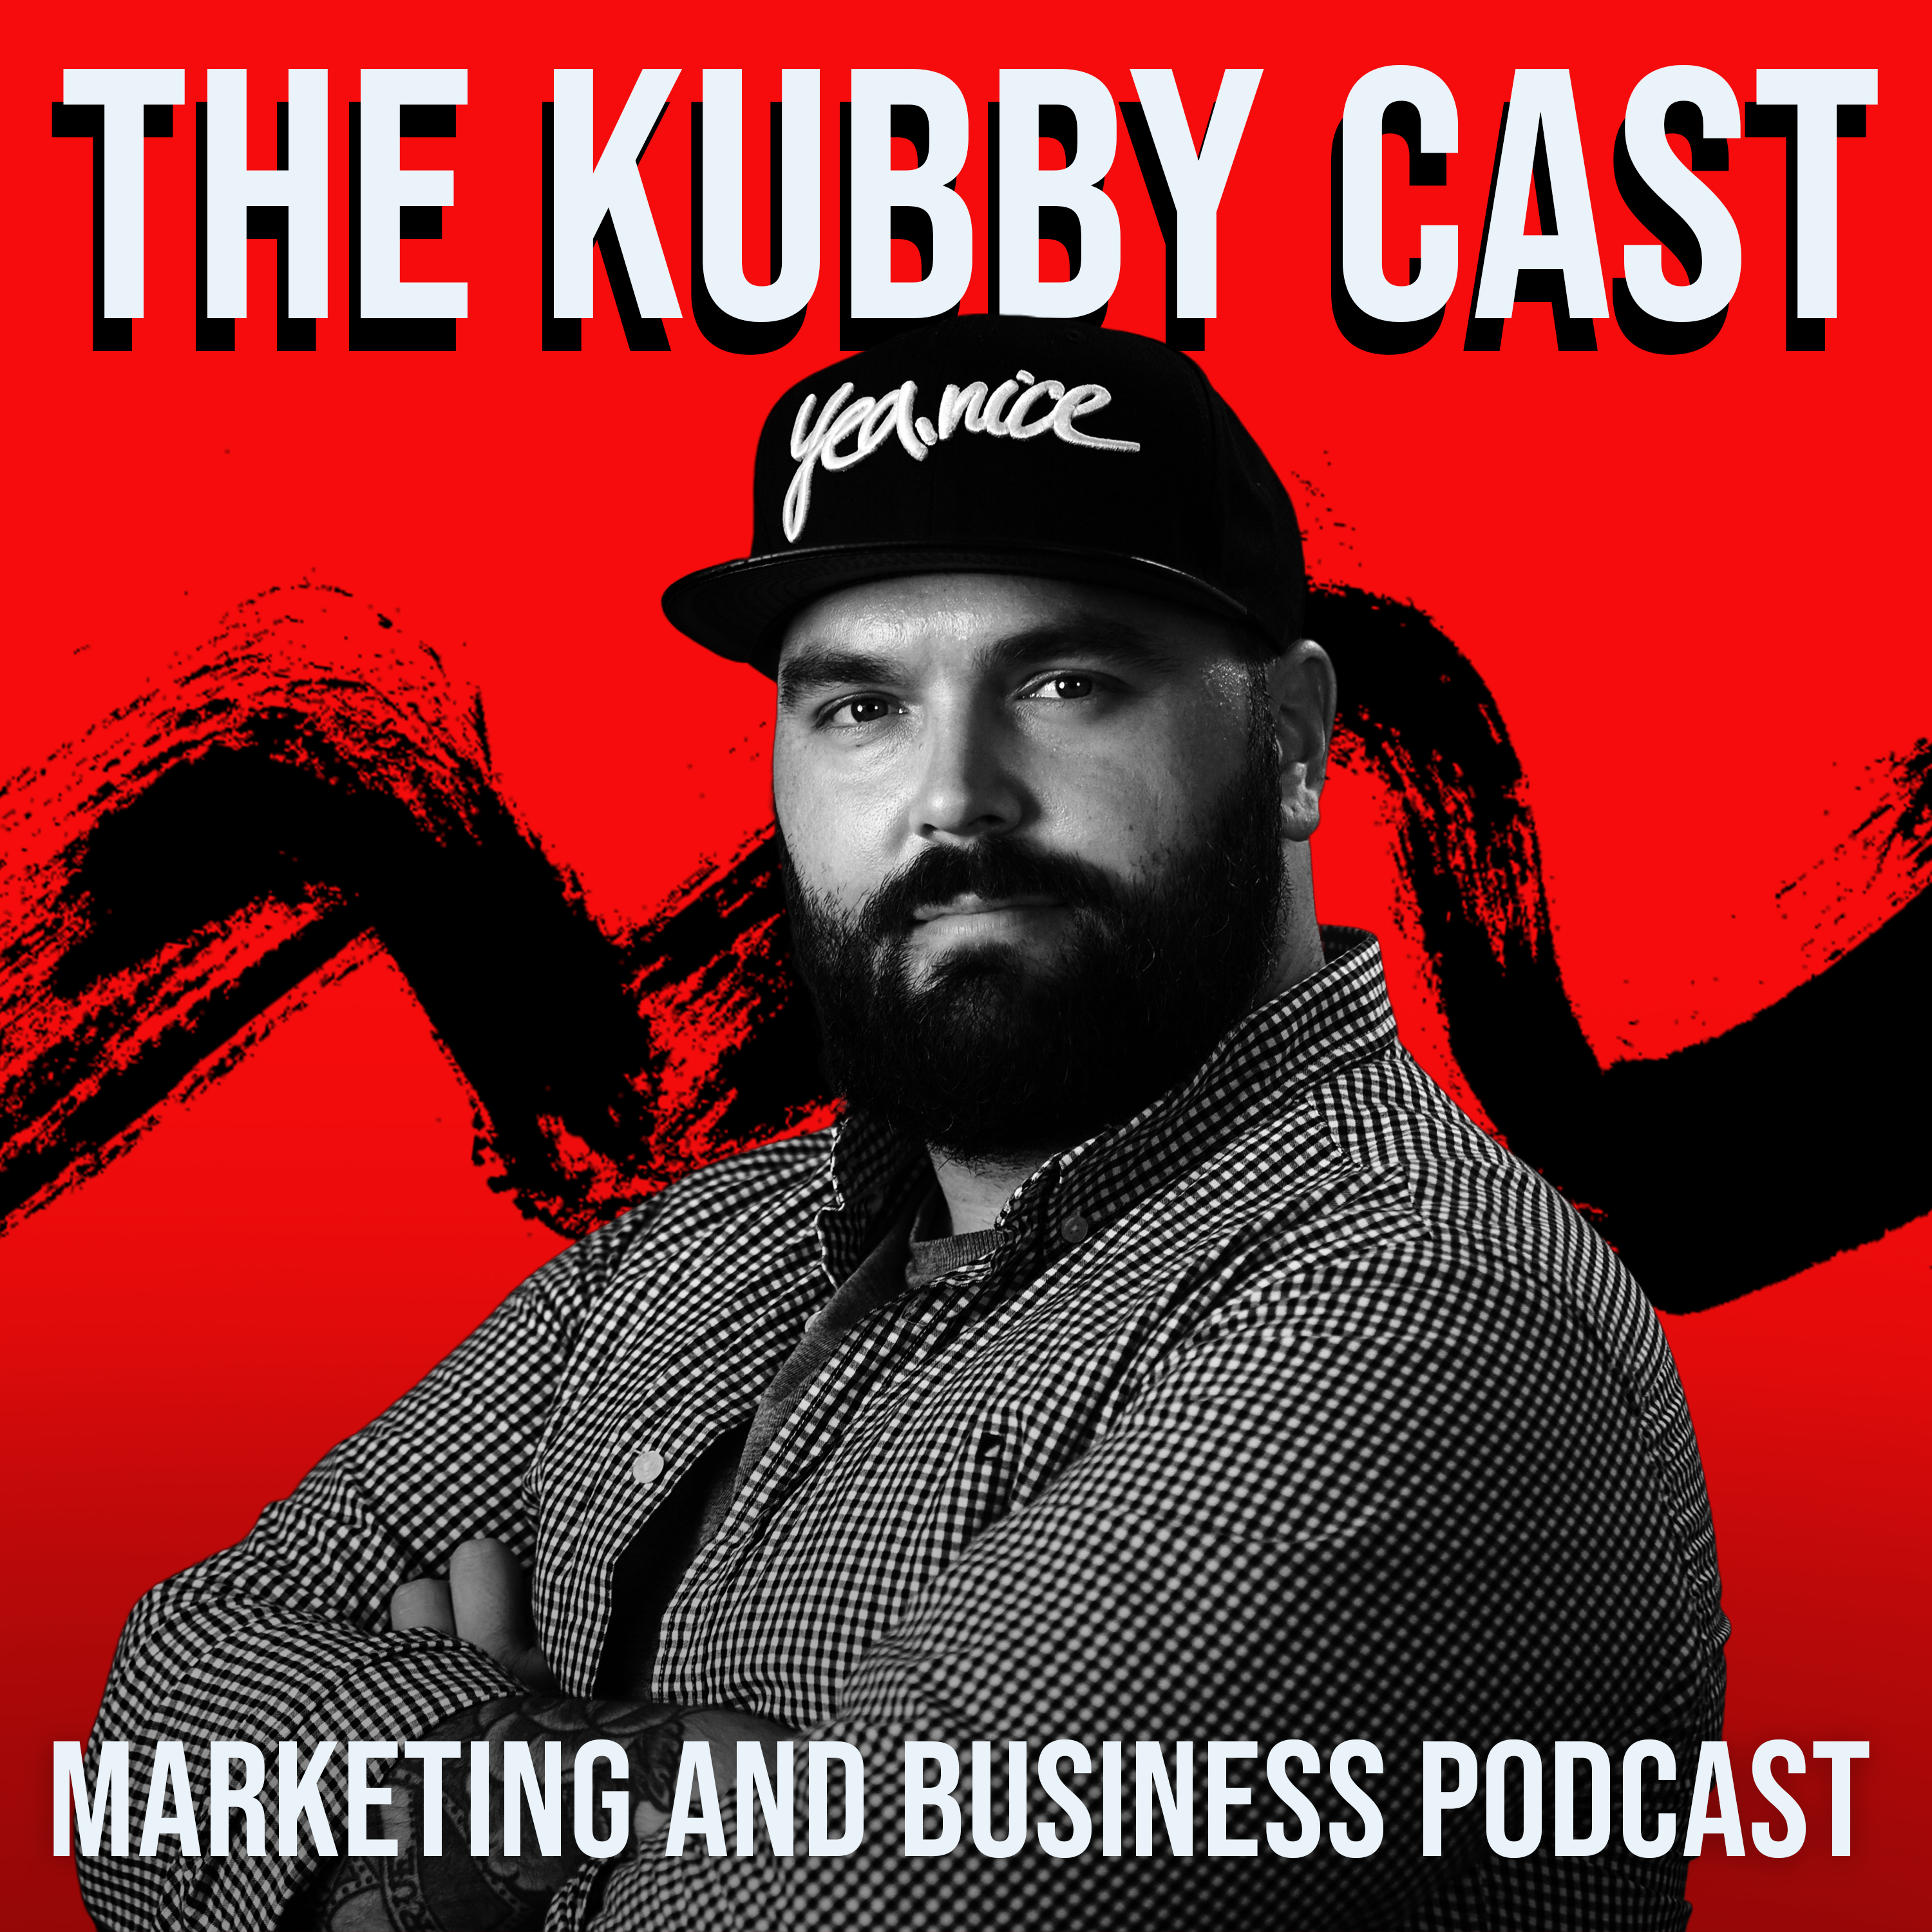 The Kubby Cast - Marketing and Business Podcast show art